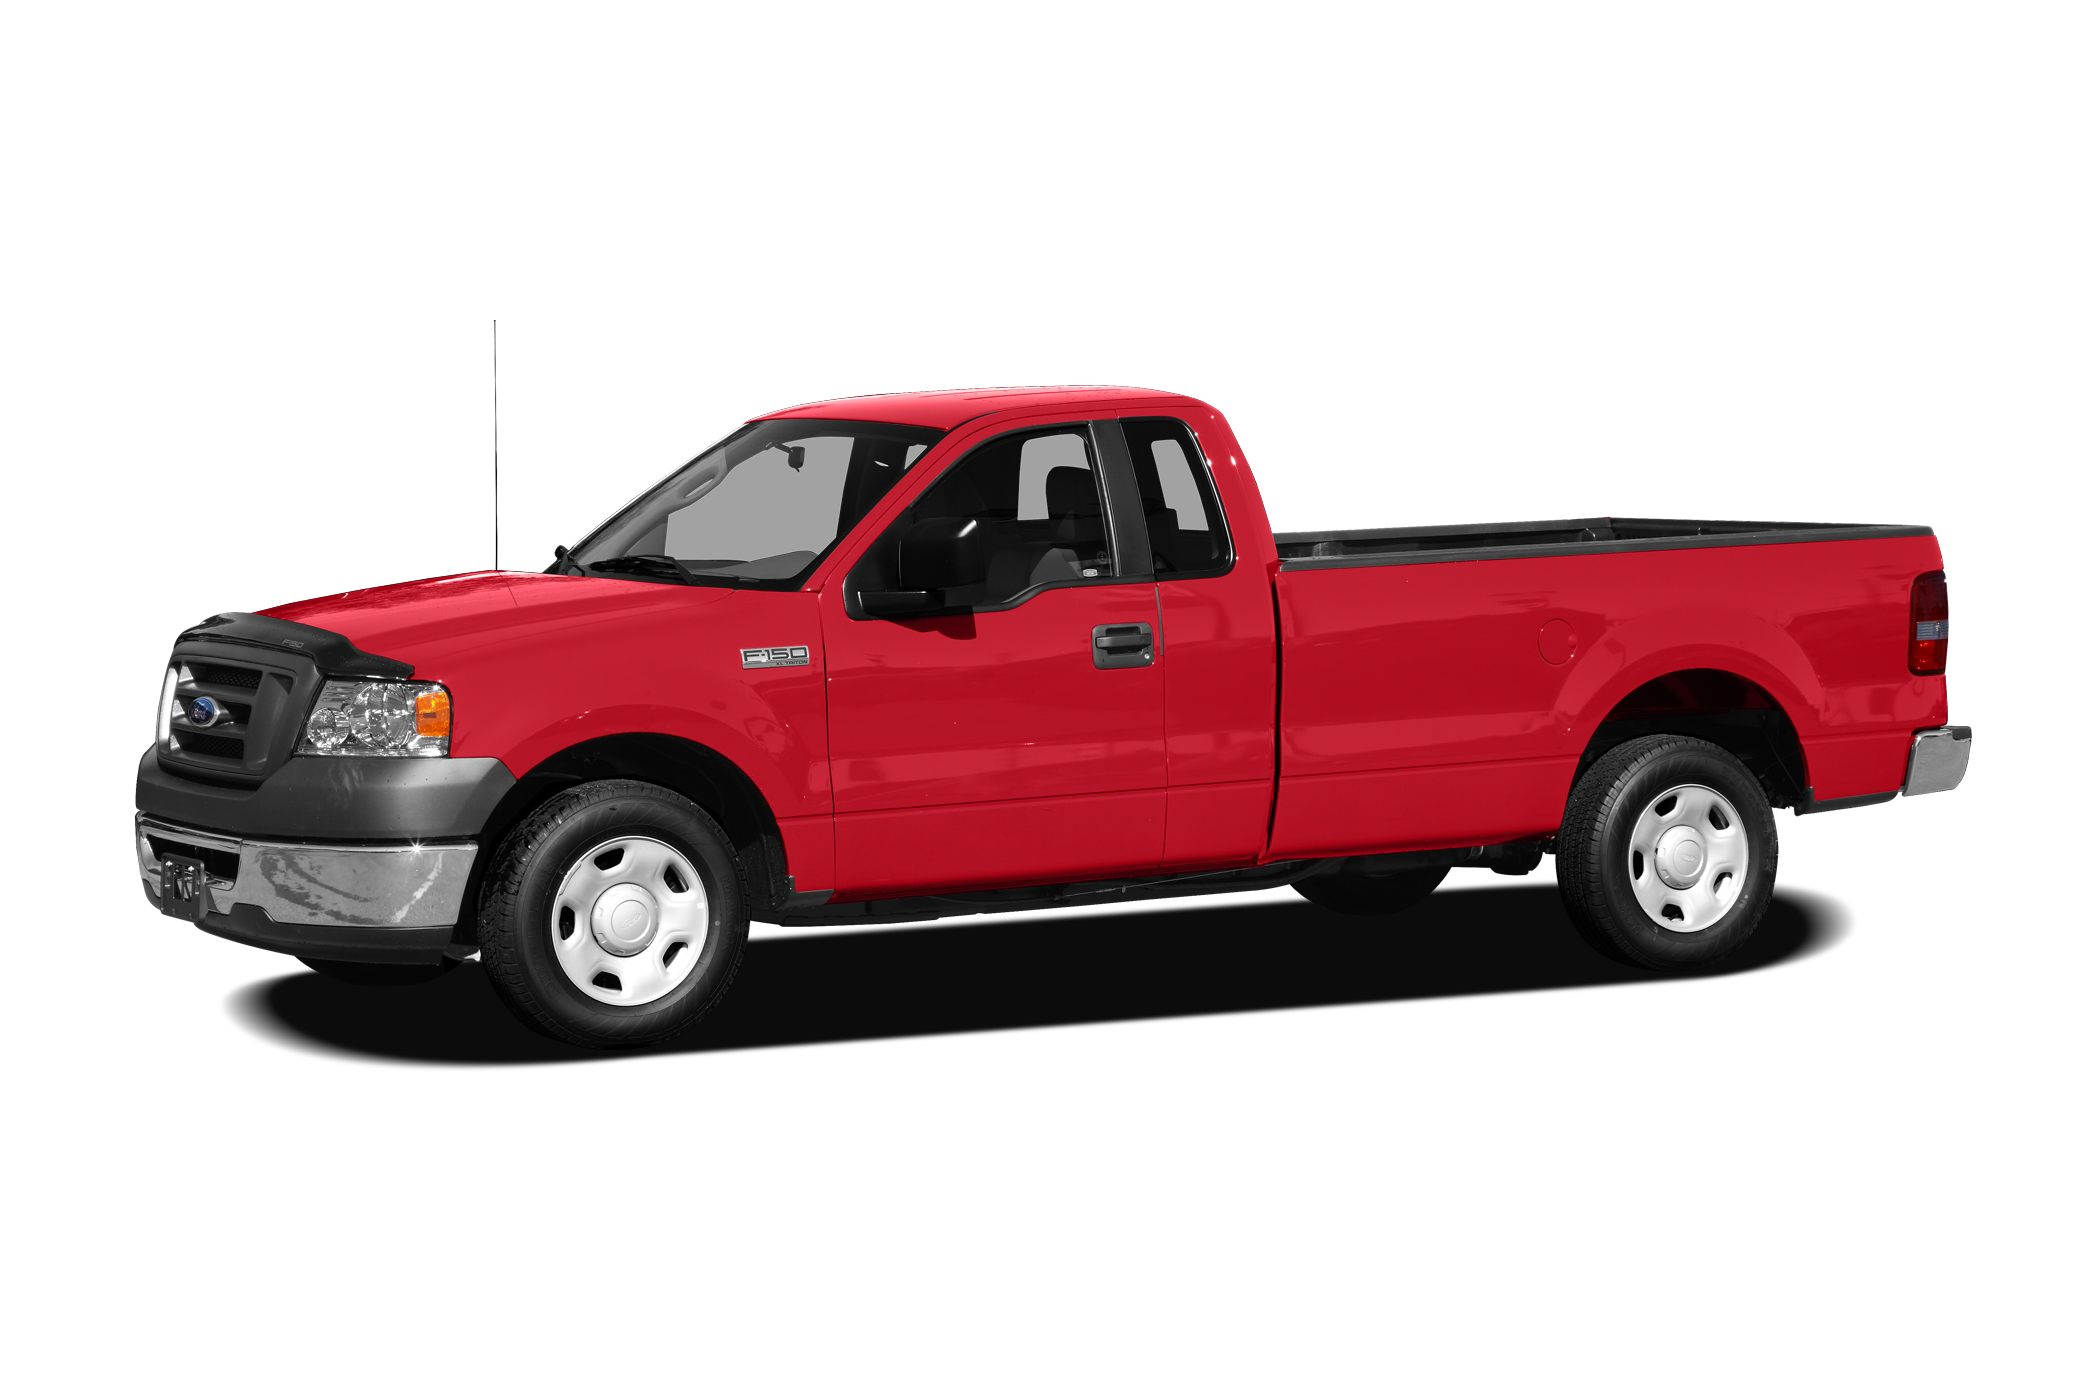 CAB80FOT115A0101 Cool Review About 2004 ford F150 Extended Cab with Captivating Gallery Cars Review